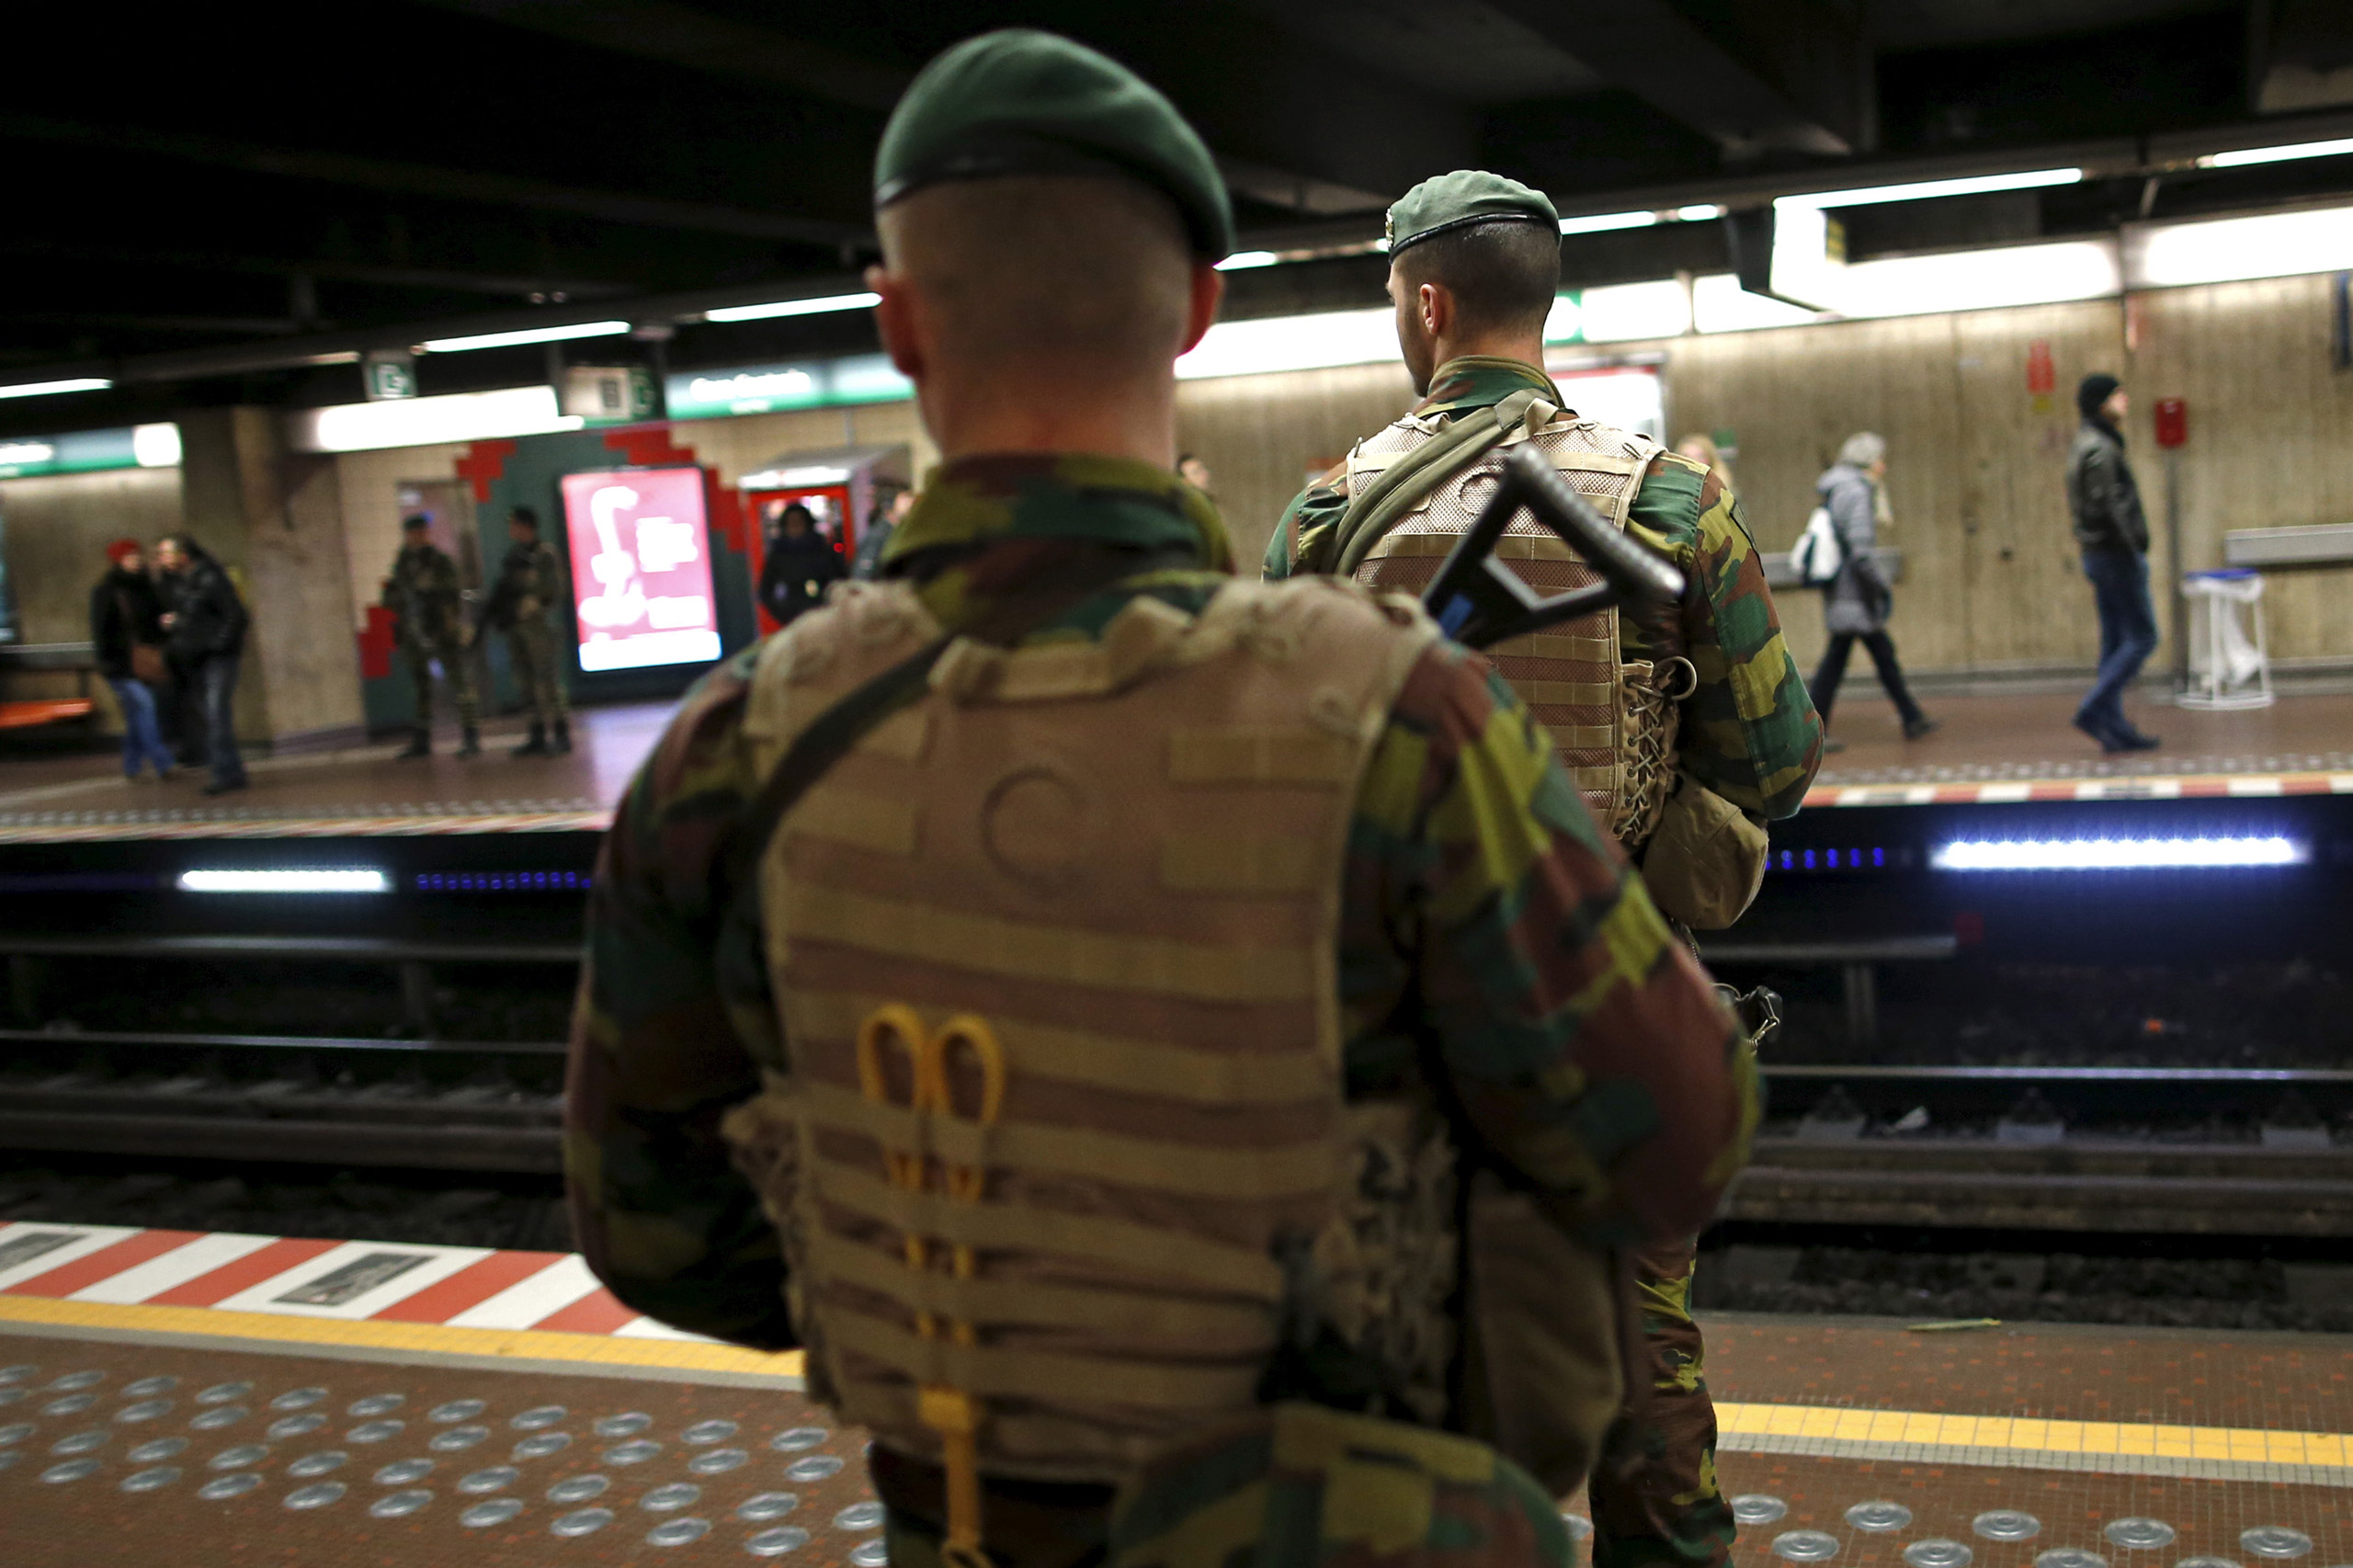 Belgian soldiers patrol at the Central Station subway stop in Brussels on Nov. 25, 2015.